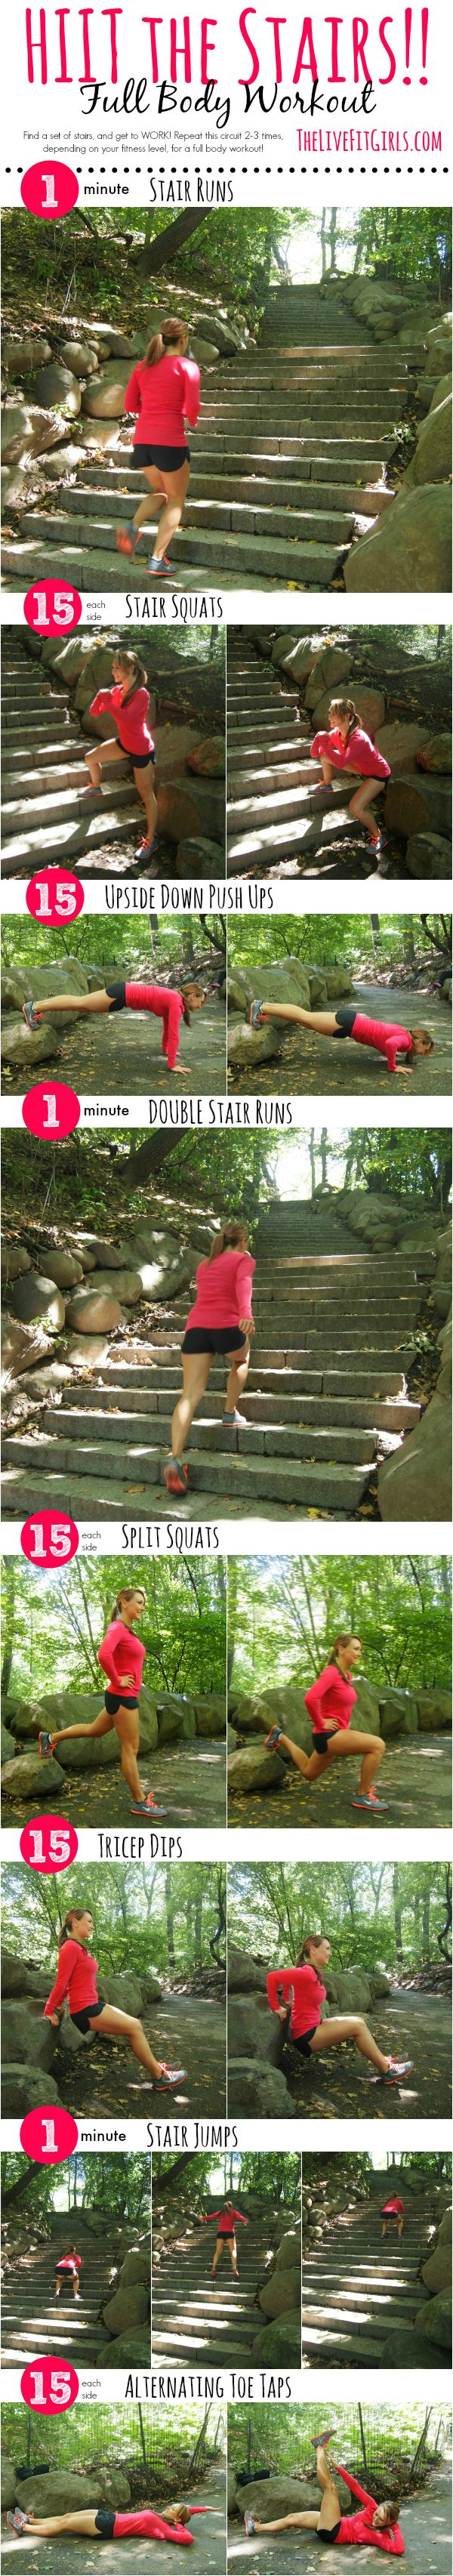 HIIT the Stairs! Find a set of stairs and get to WORK! Repeat this circuit 2-3 times, depending on your fitness level, for a full body workout!